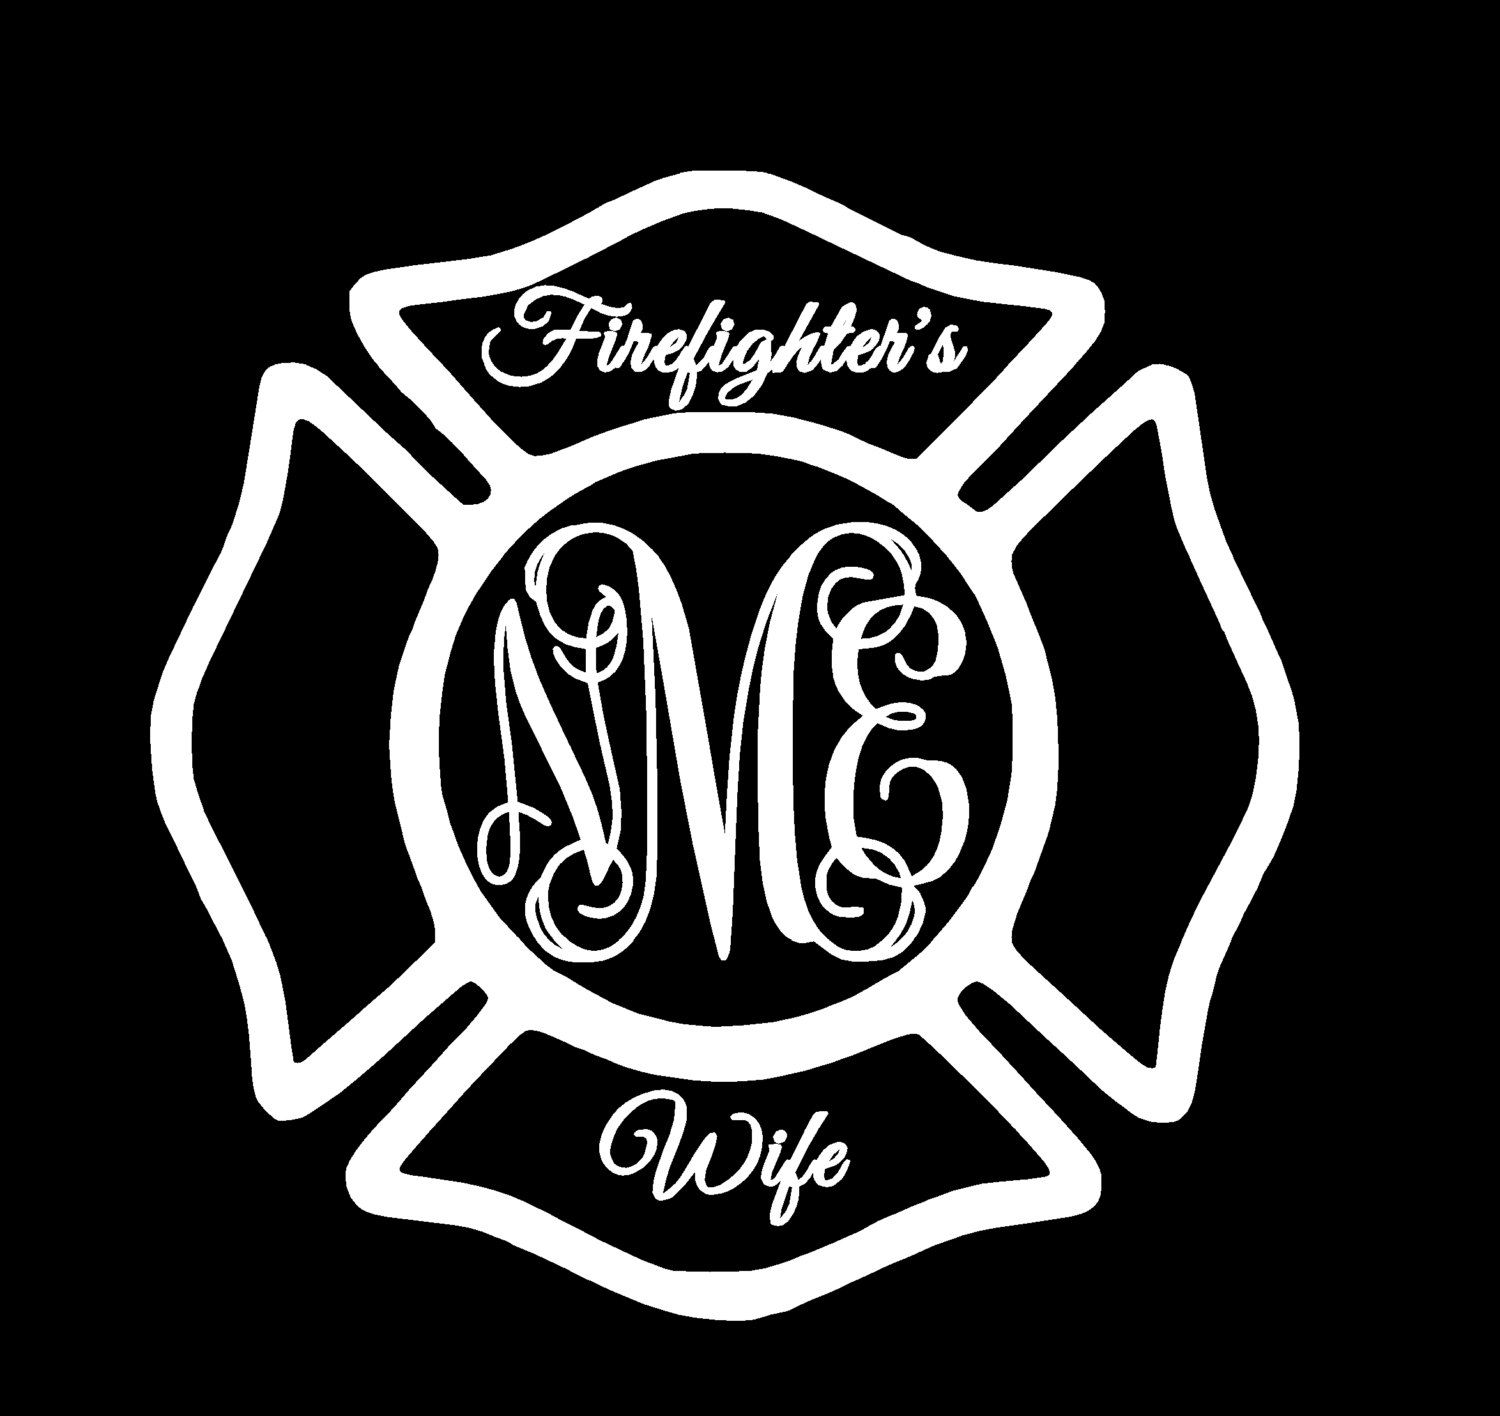 Firefighters wife monogram initials decal maltese cross fireman firefighters wife monogram initials decal maltese cross fireman decal fire department decal biocorpaavc